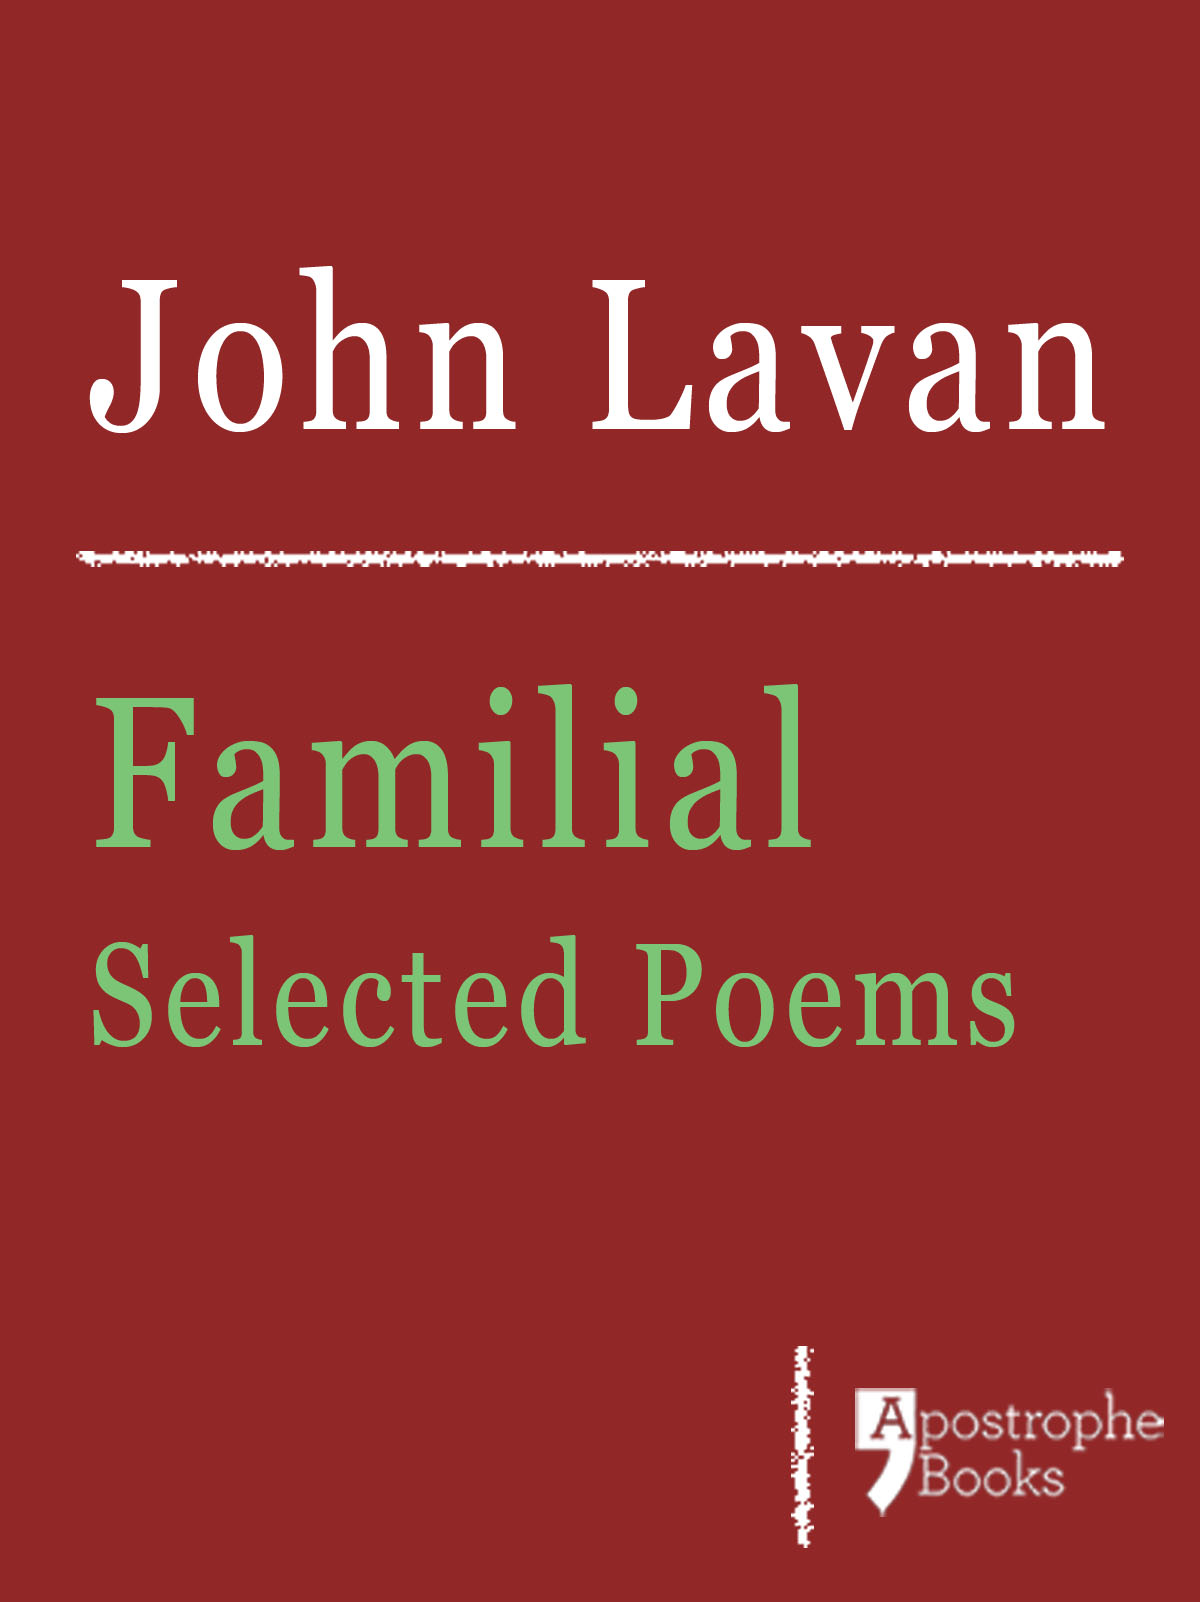 Familial: Selected Poems: Poems About Family,  Love And Nature